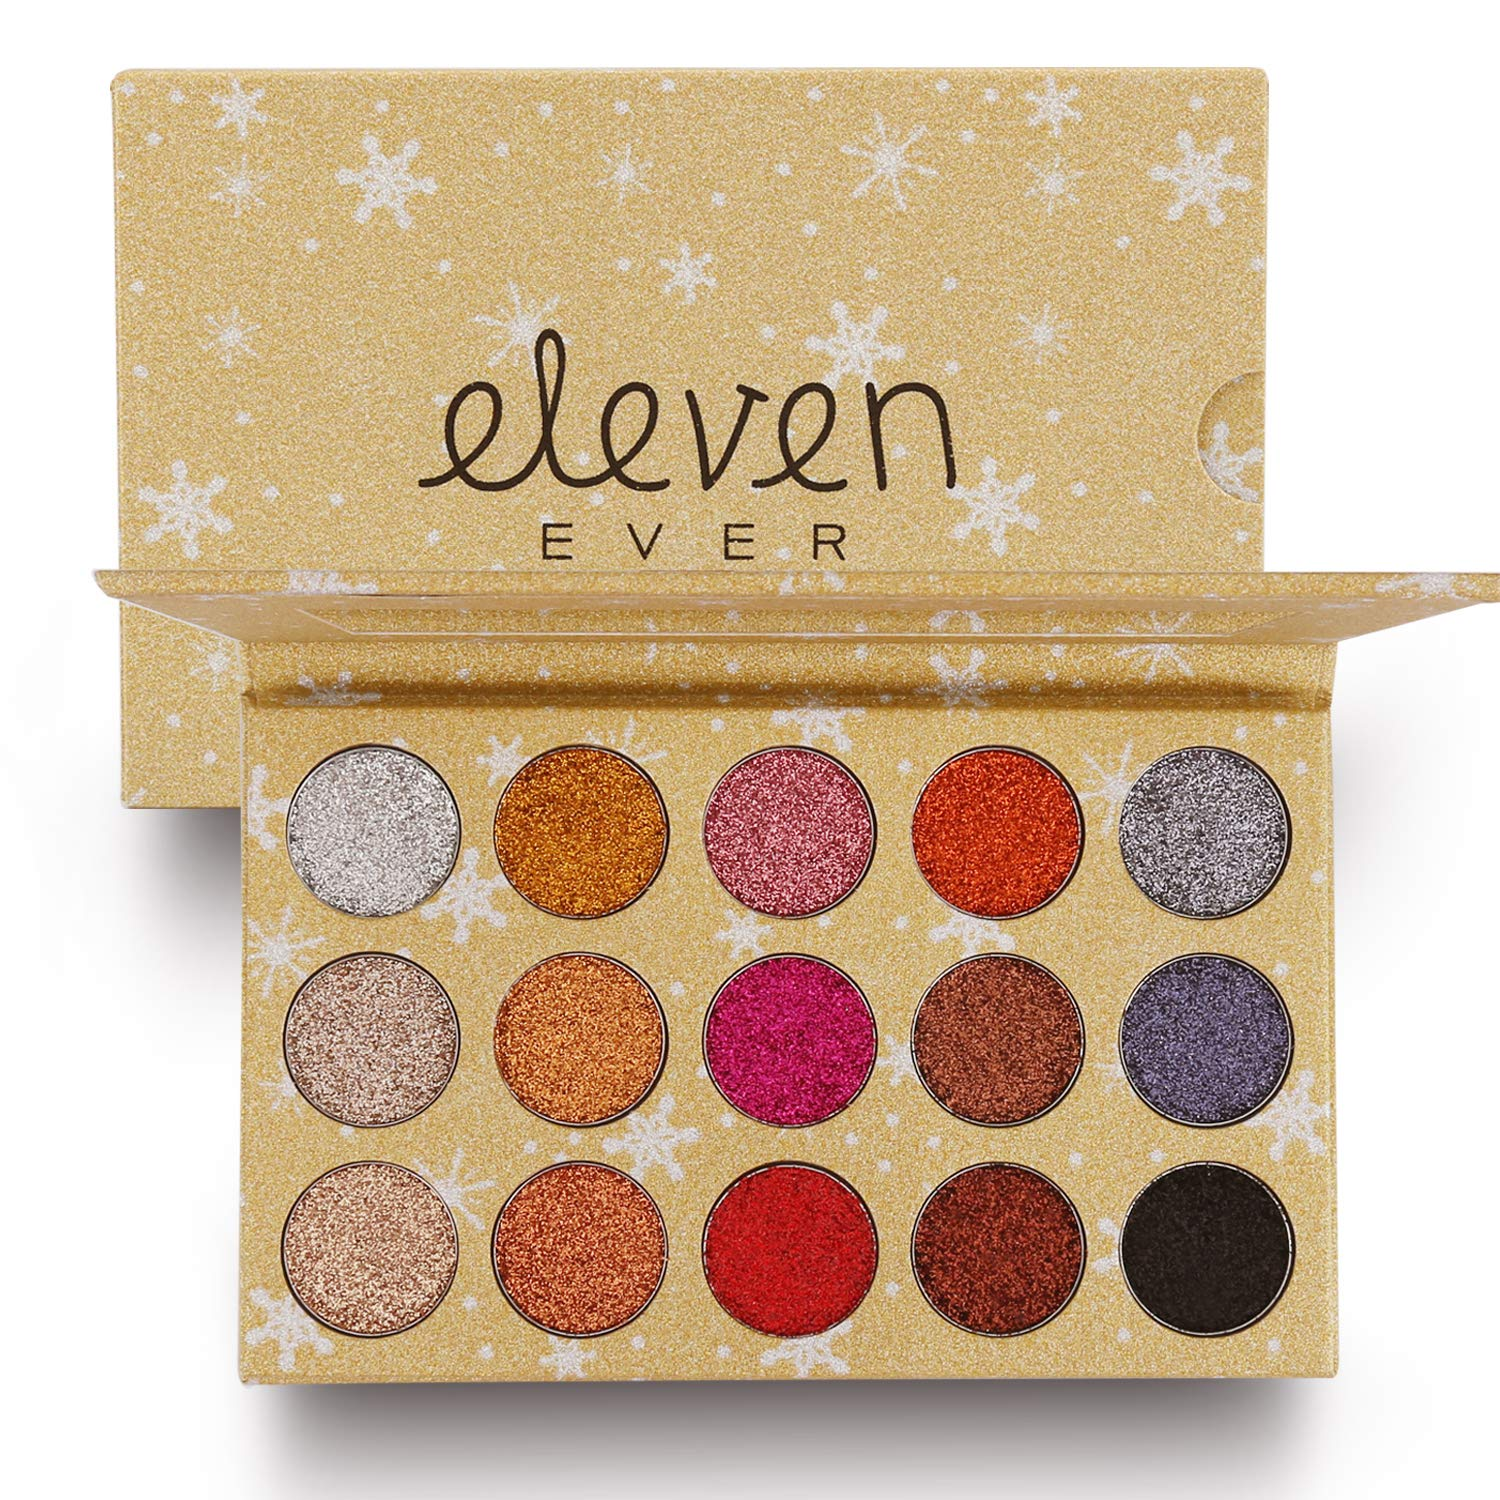 ELEVEN EVER 15 Colors Glitter Eyeshadow Palette, Professional Highly Pigmented and Long-Lasting Mineral Shimmer Makeup Pallet (Gold)